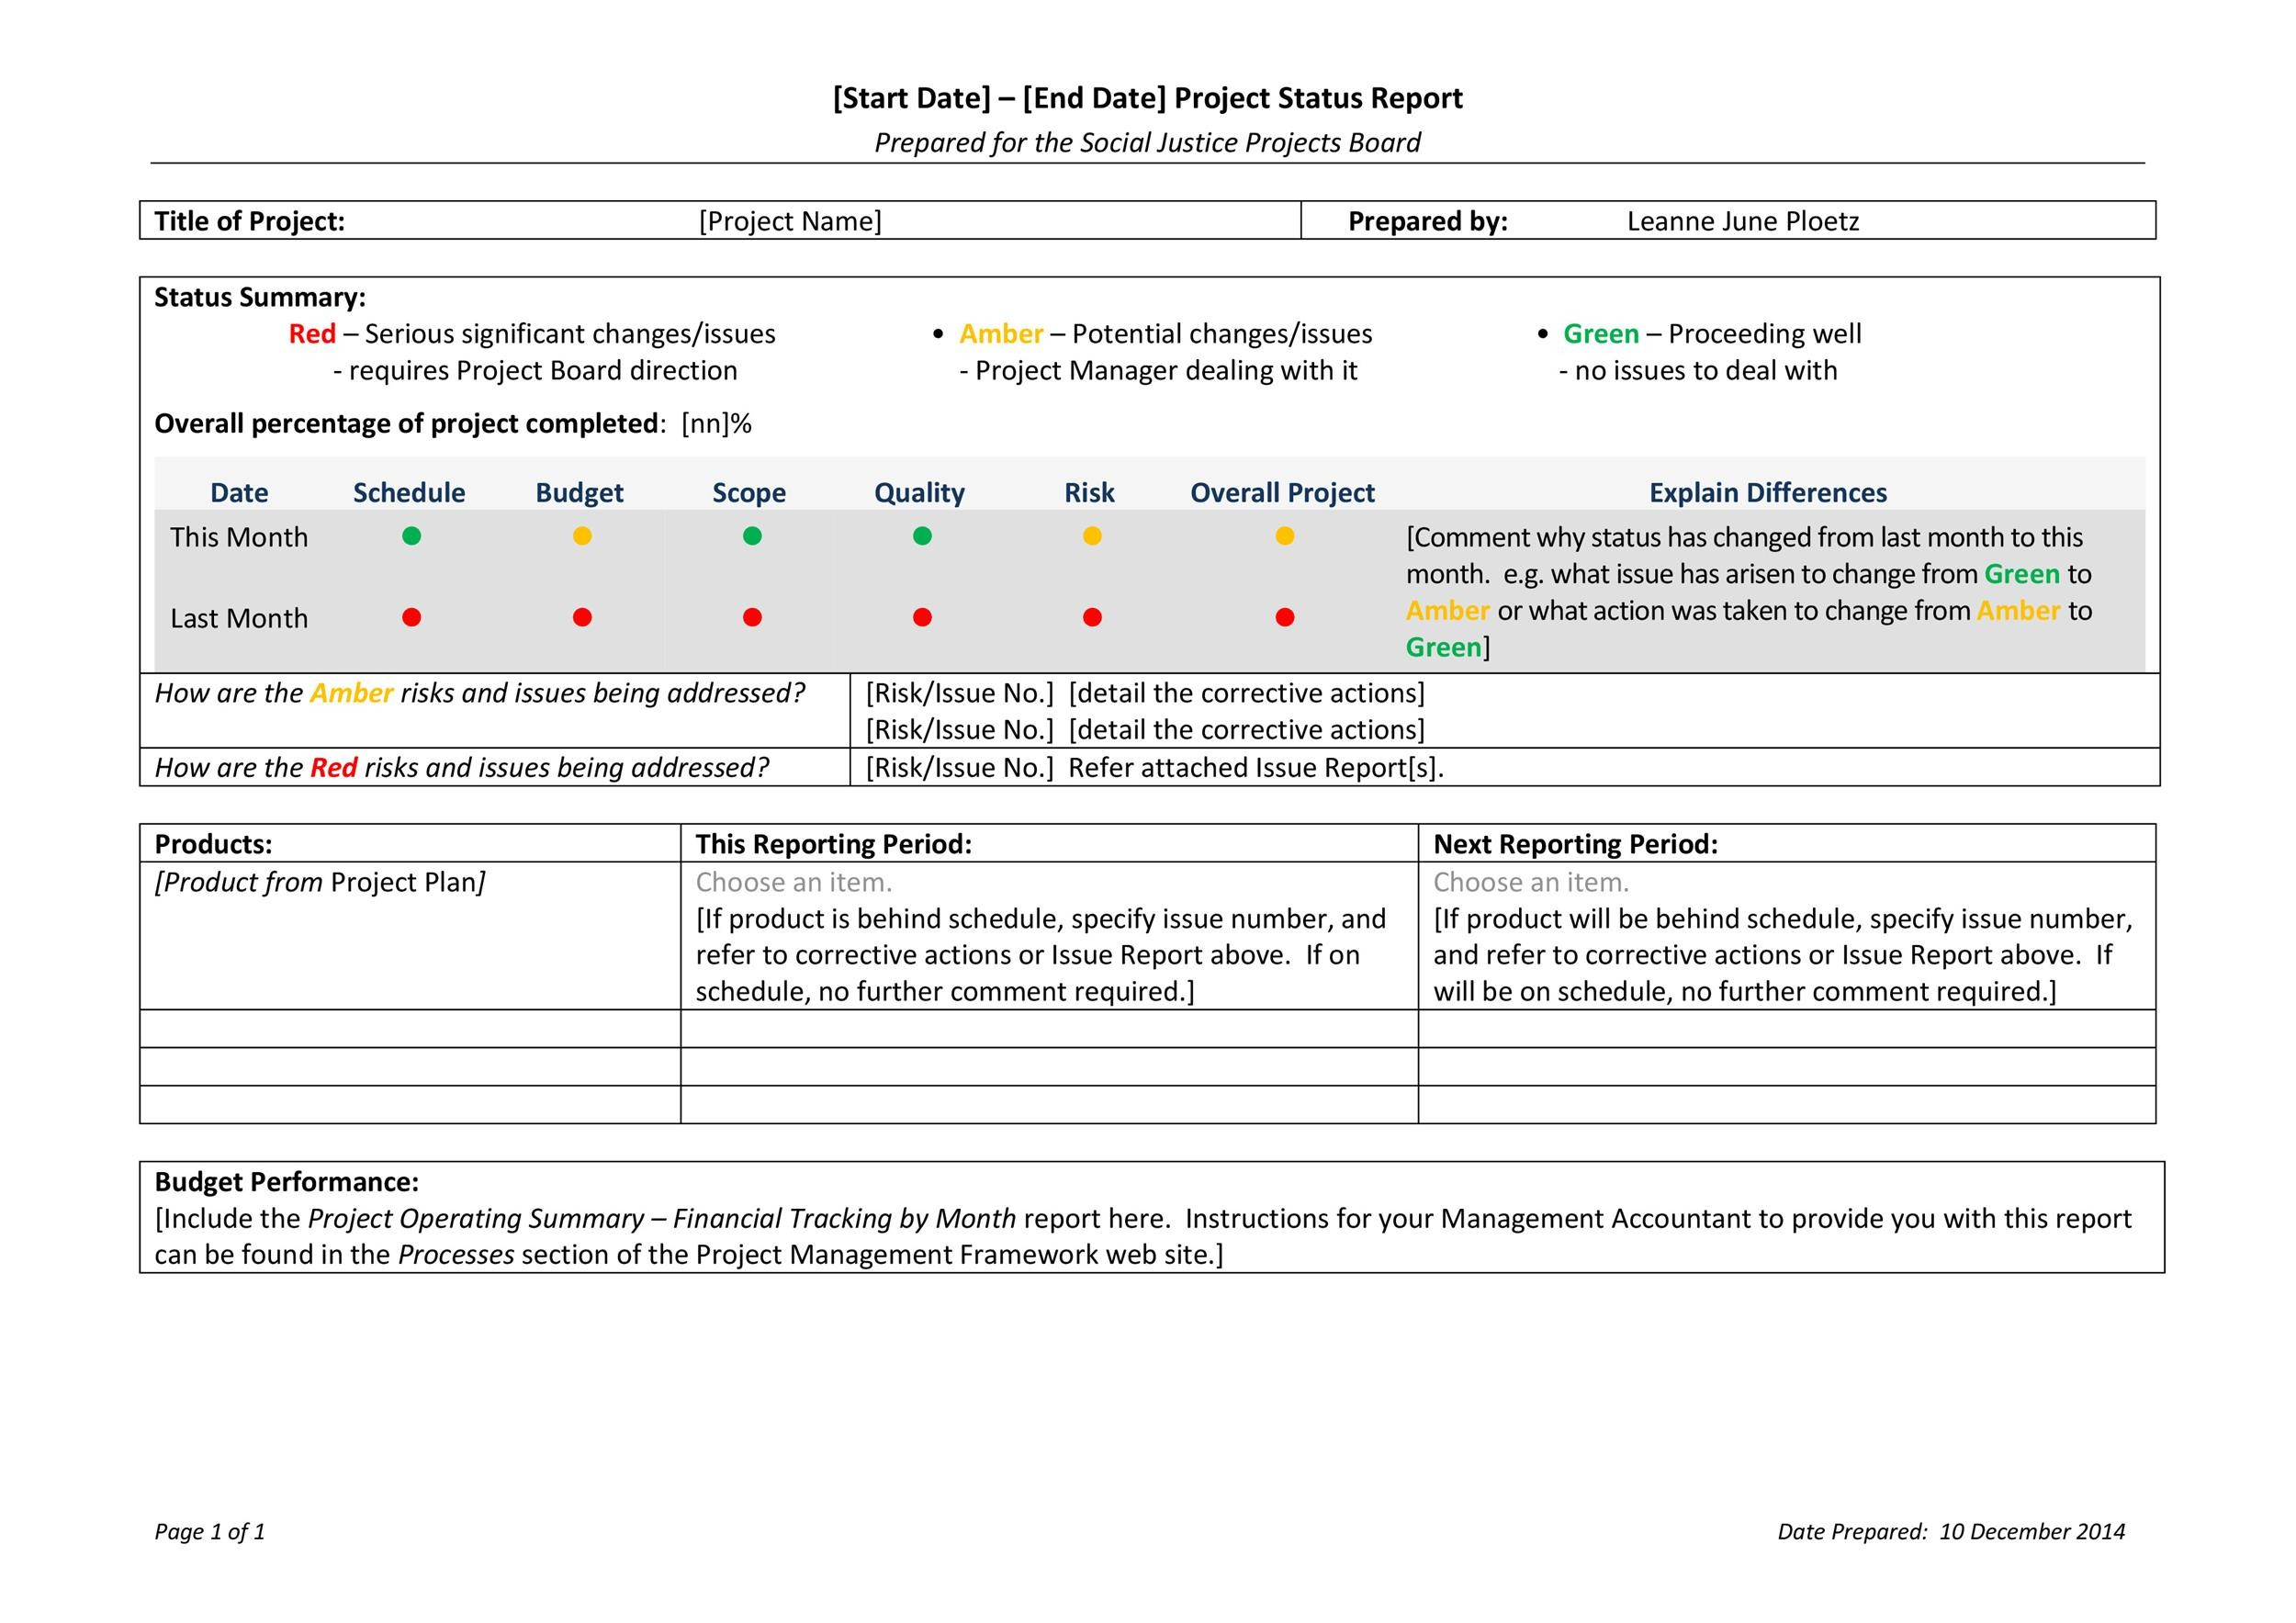 40+ Project Status Report Templates Word, Excel, PPT - Template Lab